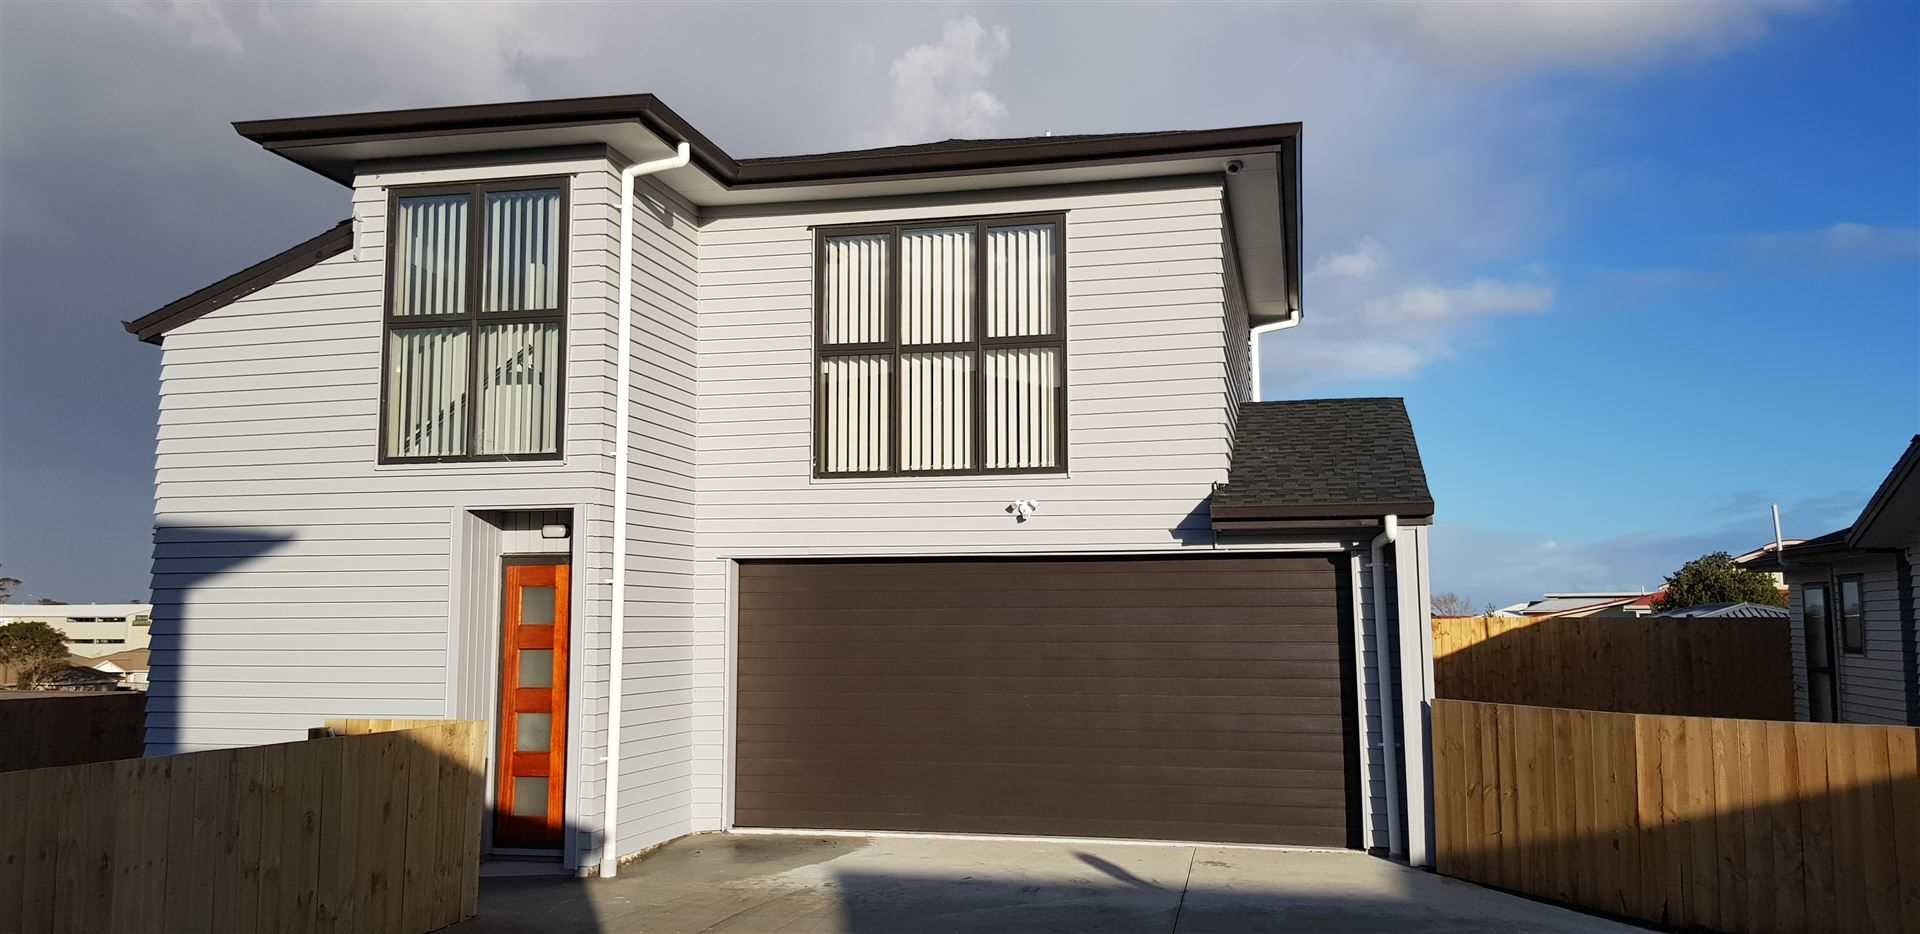 Brand New 2 Level, 4 Bedroom House Up For Grabs!!